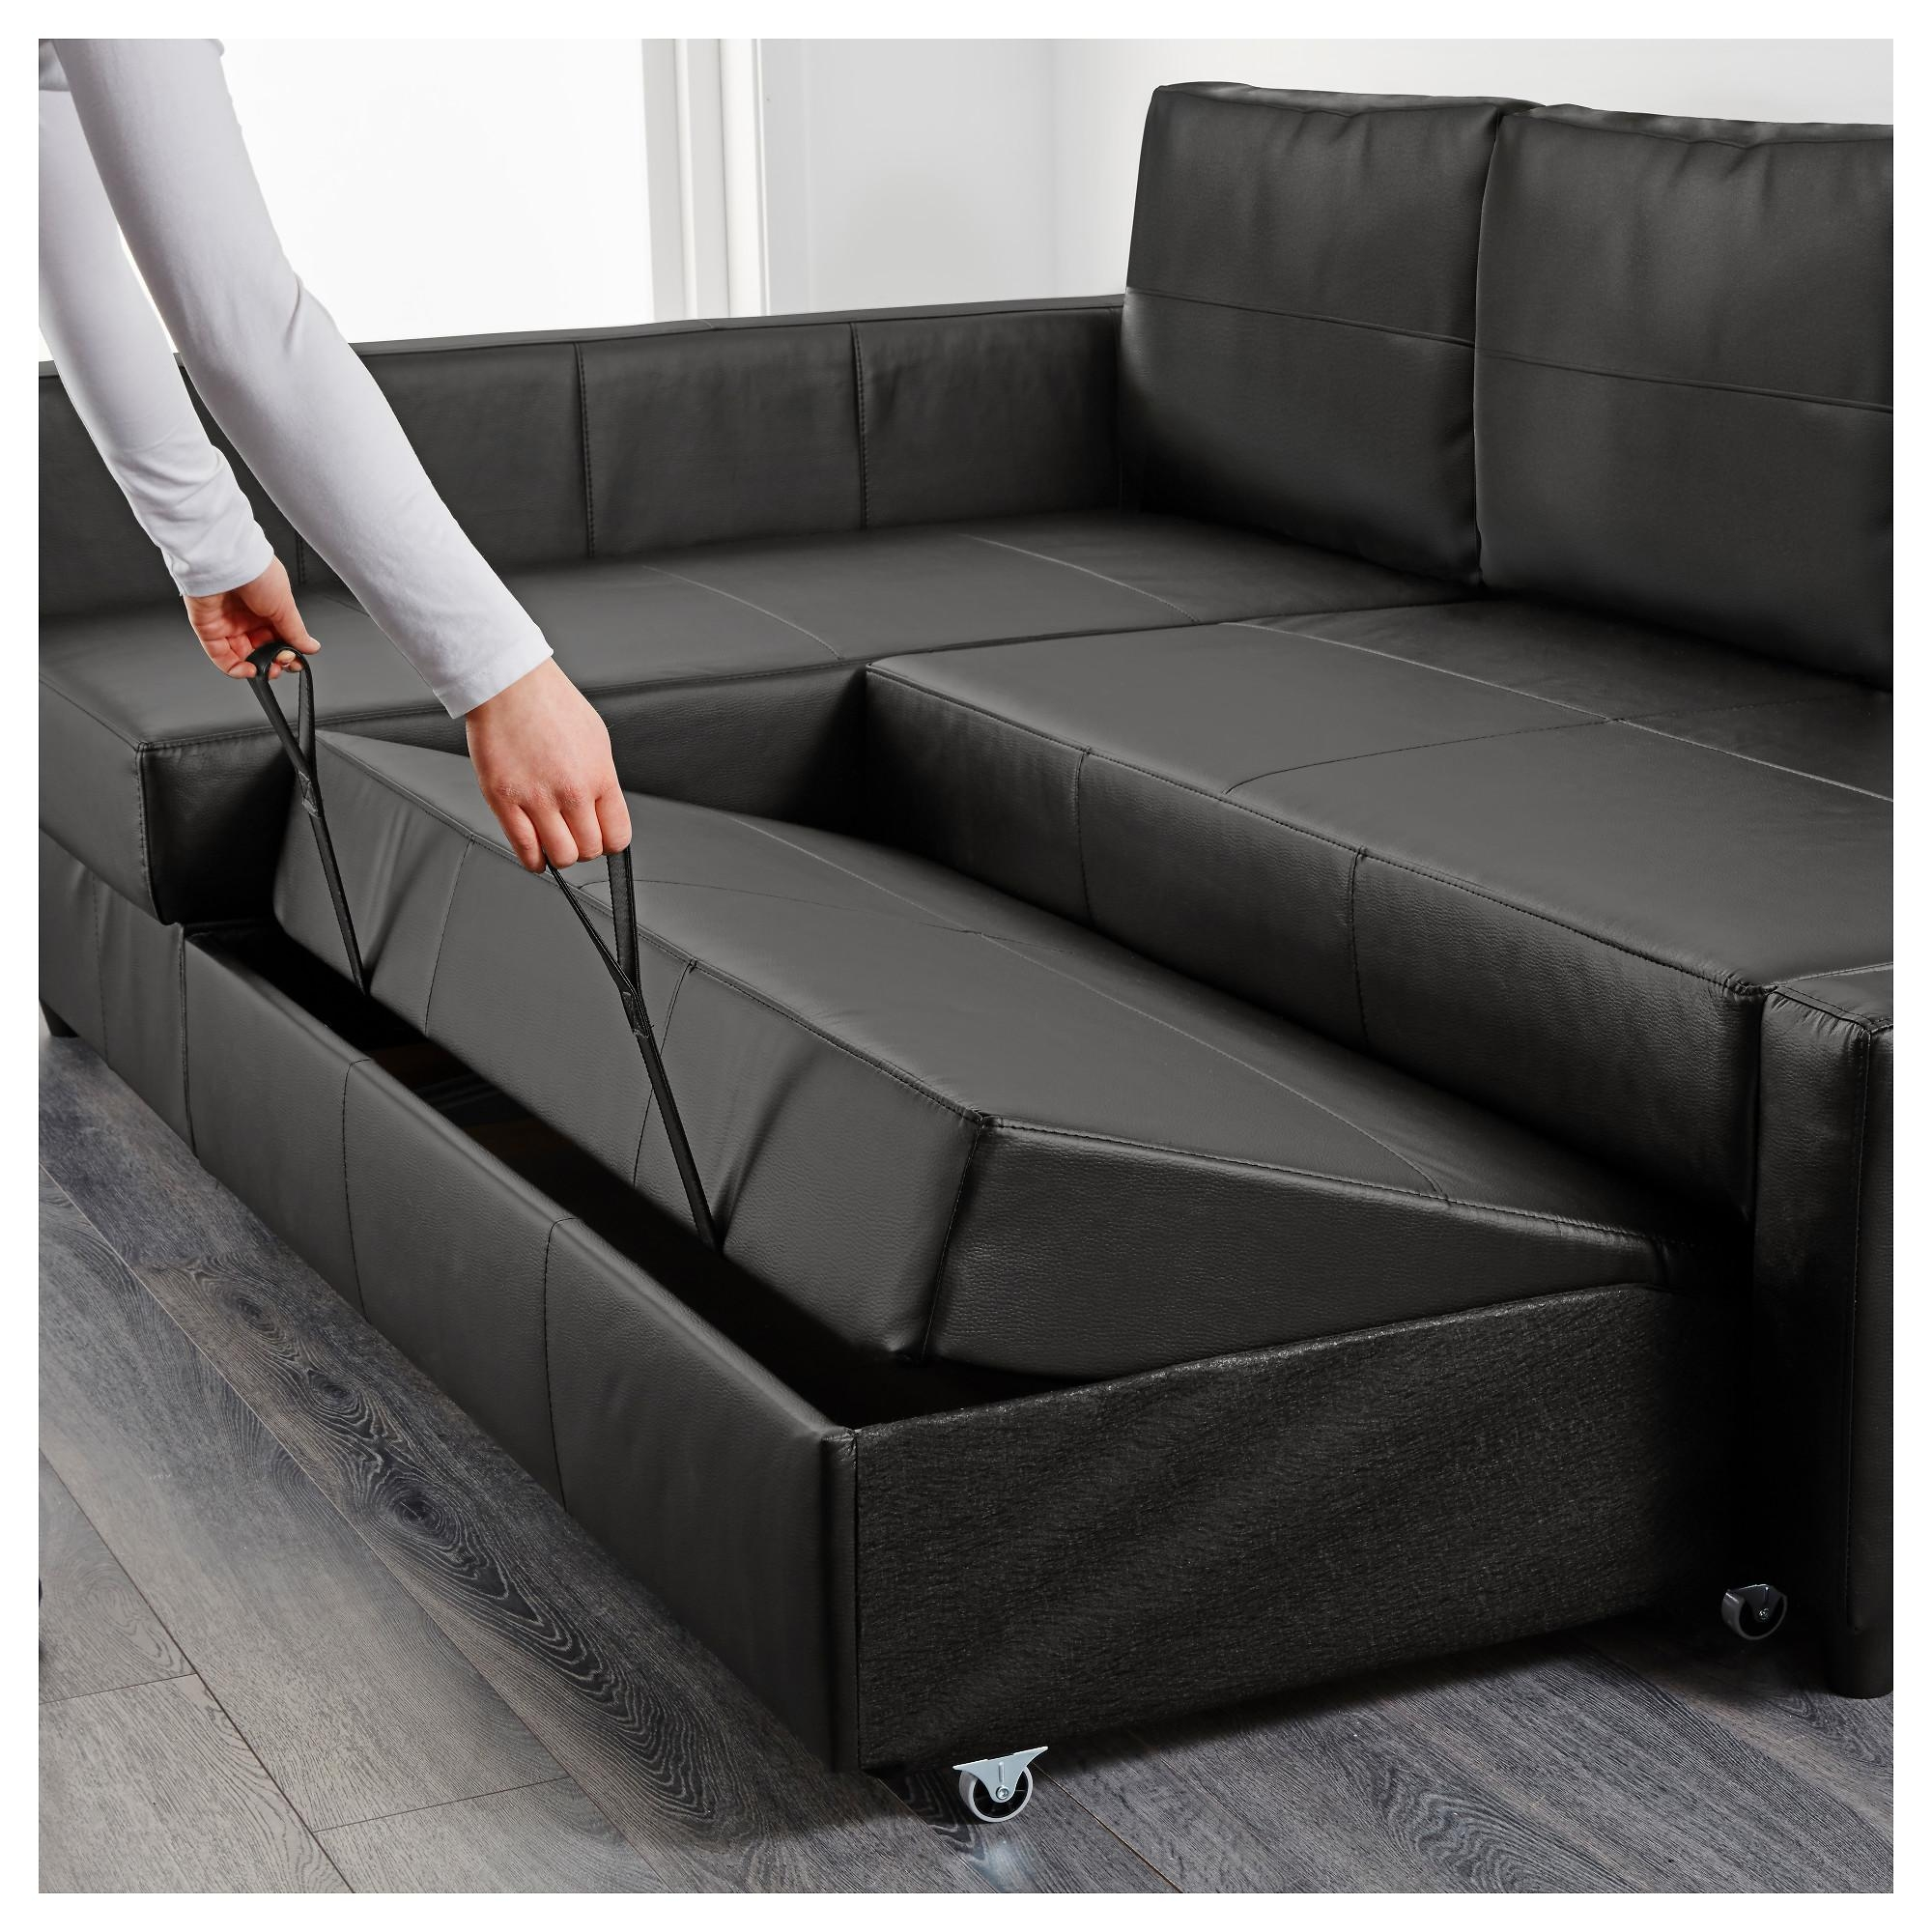 Friheten Sleeper Sectional,3 Seat W/storage – Skiftebo Dark Gray Regarding Sofa Beds With Storages (View 20 of 20)